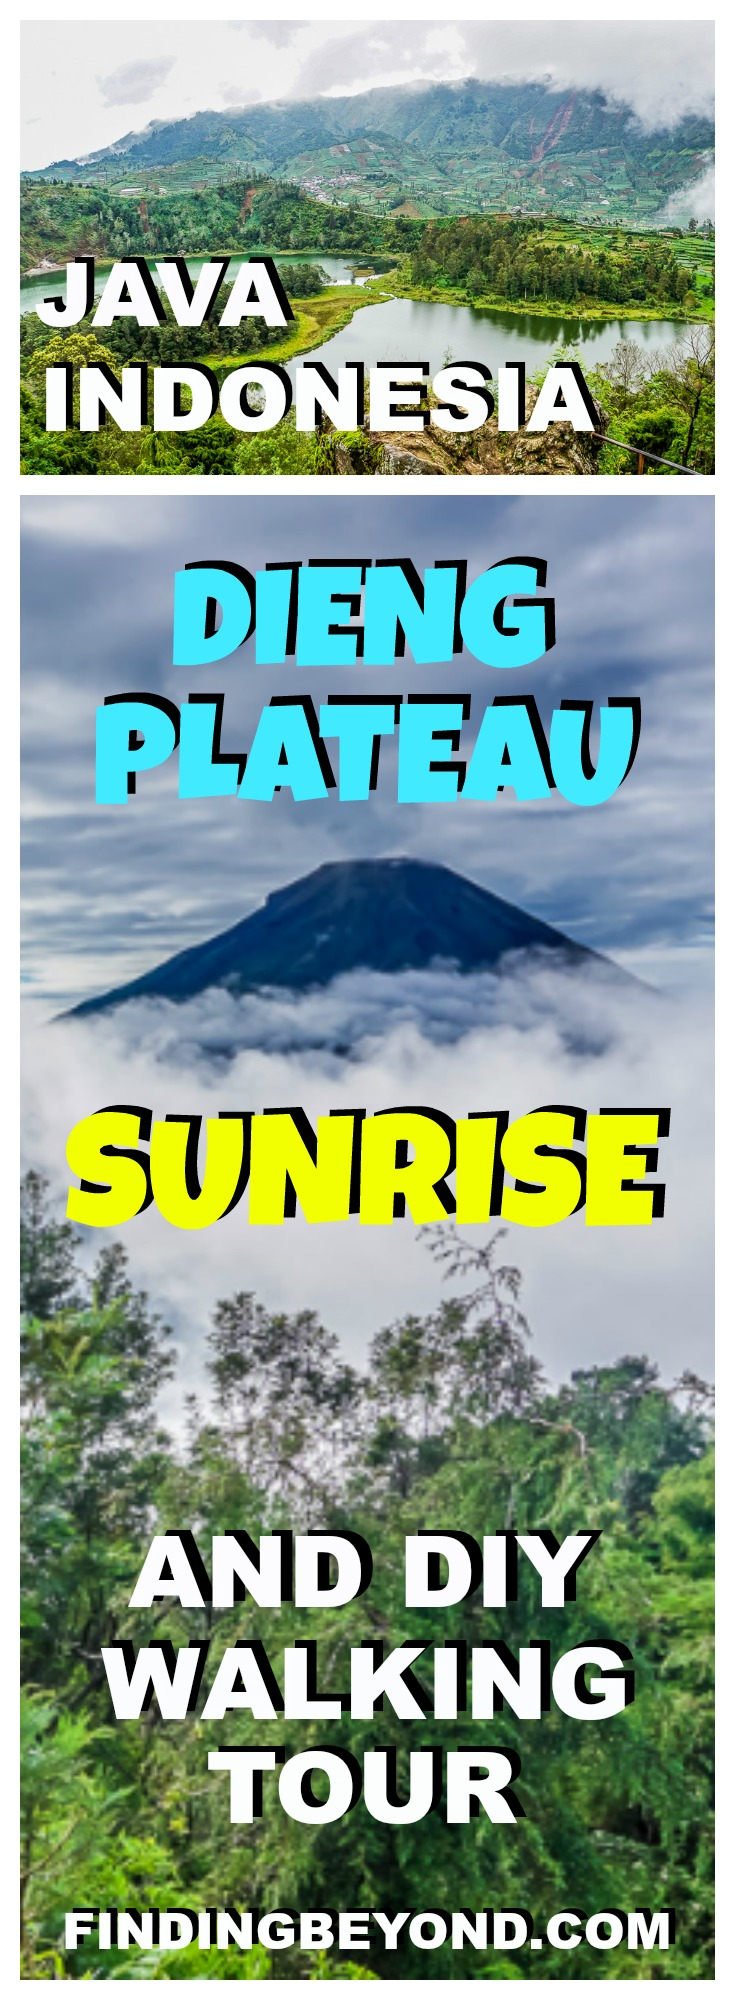 Check out our Dieng Plateau sunrise and DIY walking tour in Java. You don't need a guide to see the soaring volcanoes, steaming craters and colourful lakes.